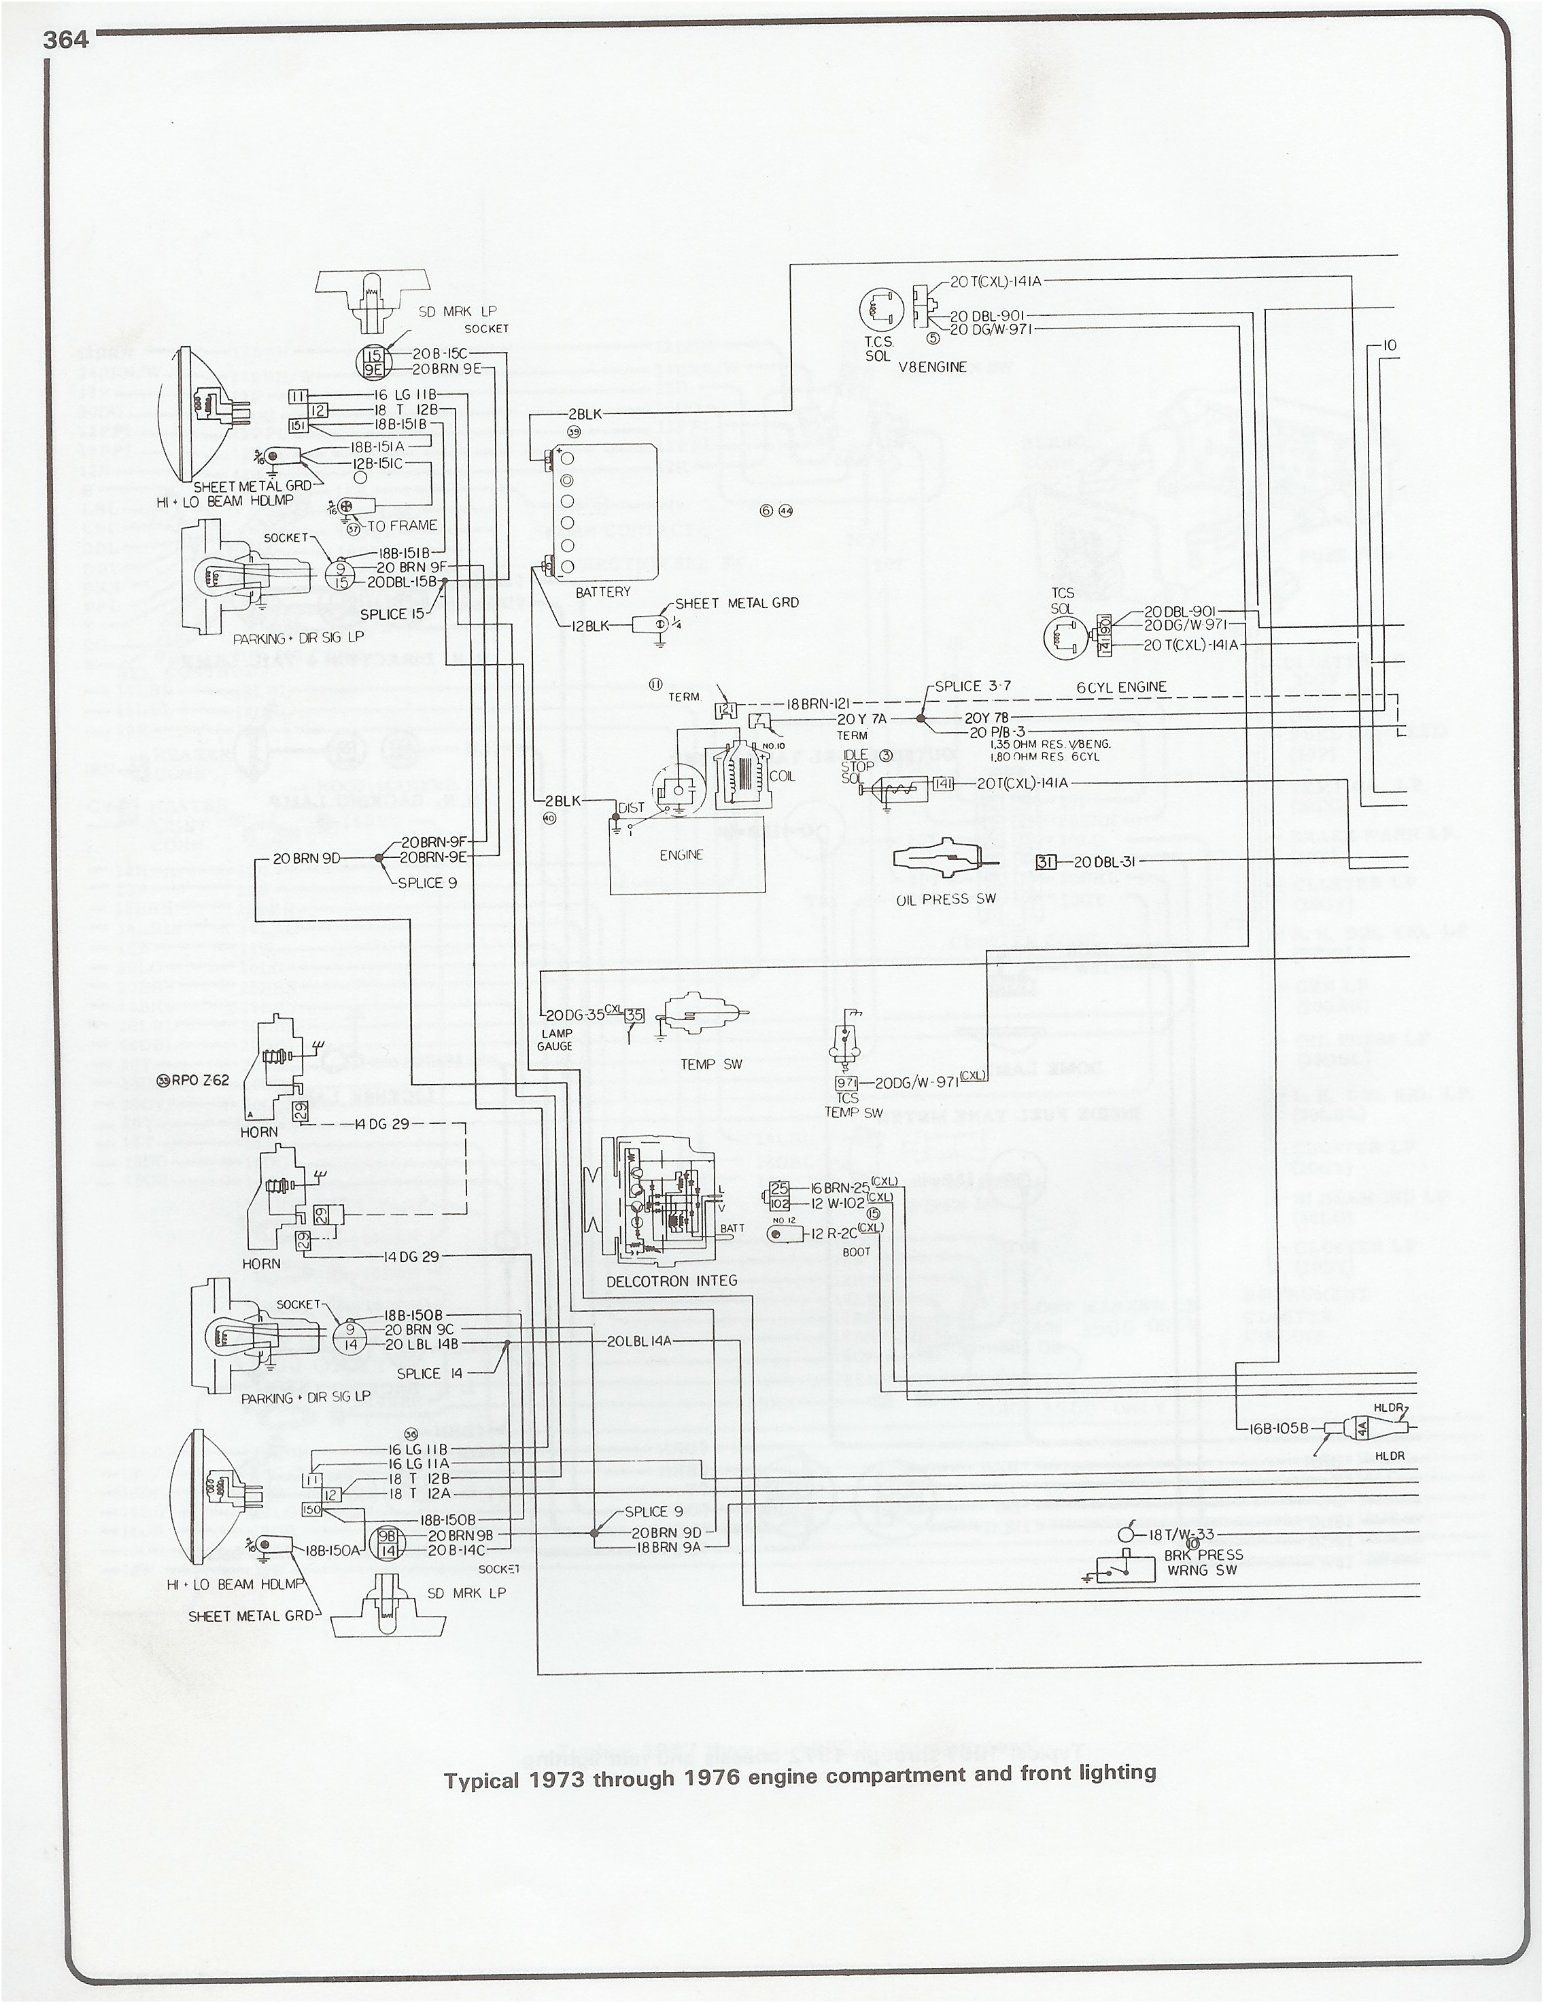 1977 c10 wiring diagram wiring diagram autovehicle 1977 chevy c10 alternator wiring [ 1544 x 2003 Pixel ]